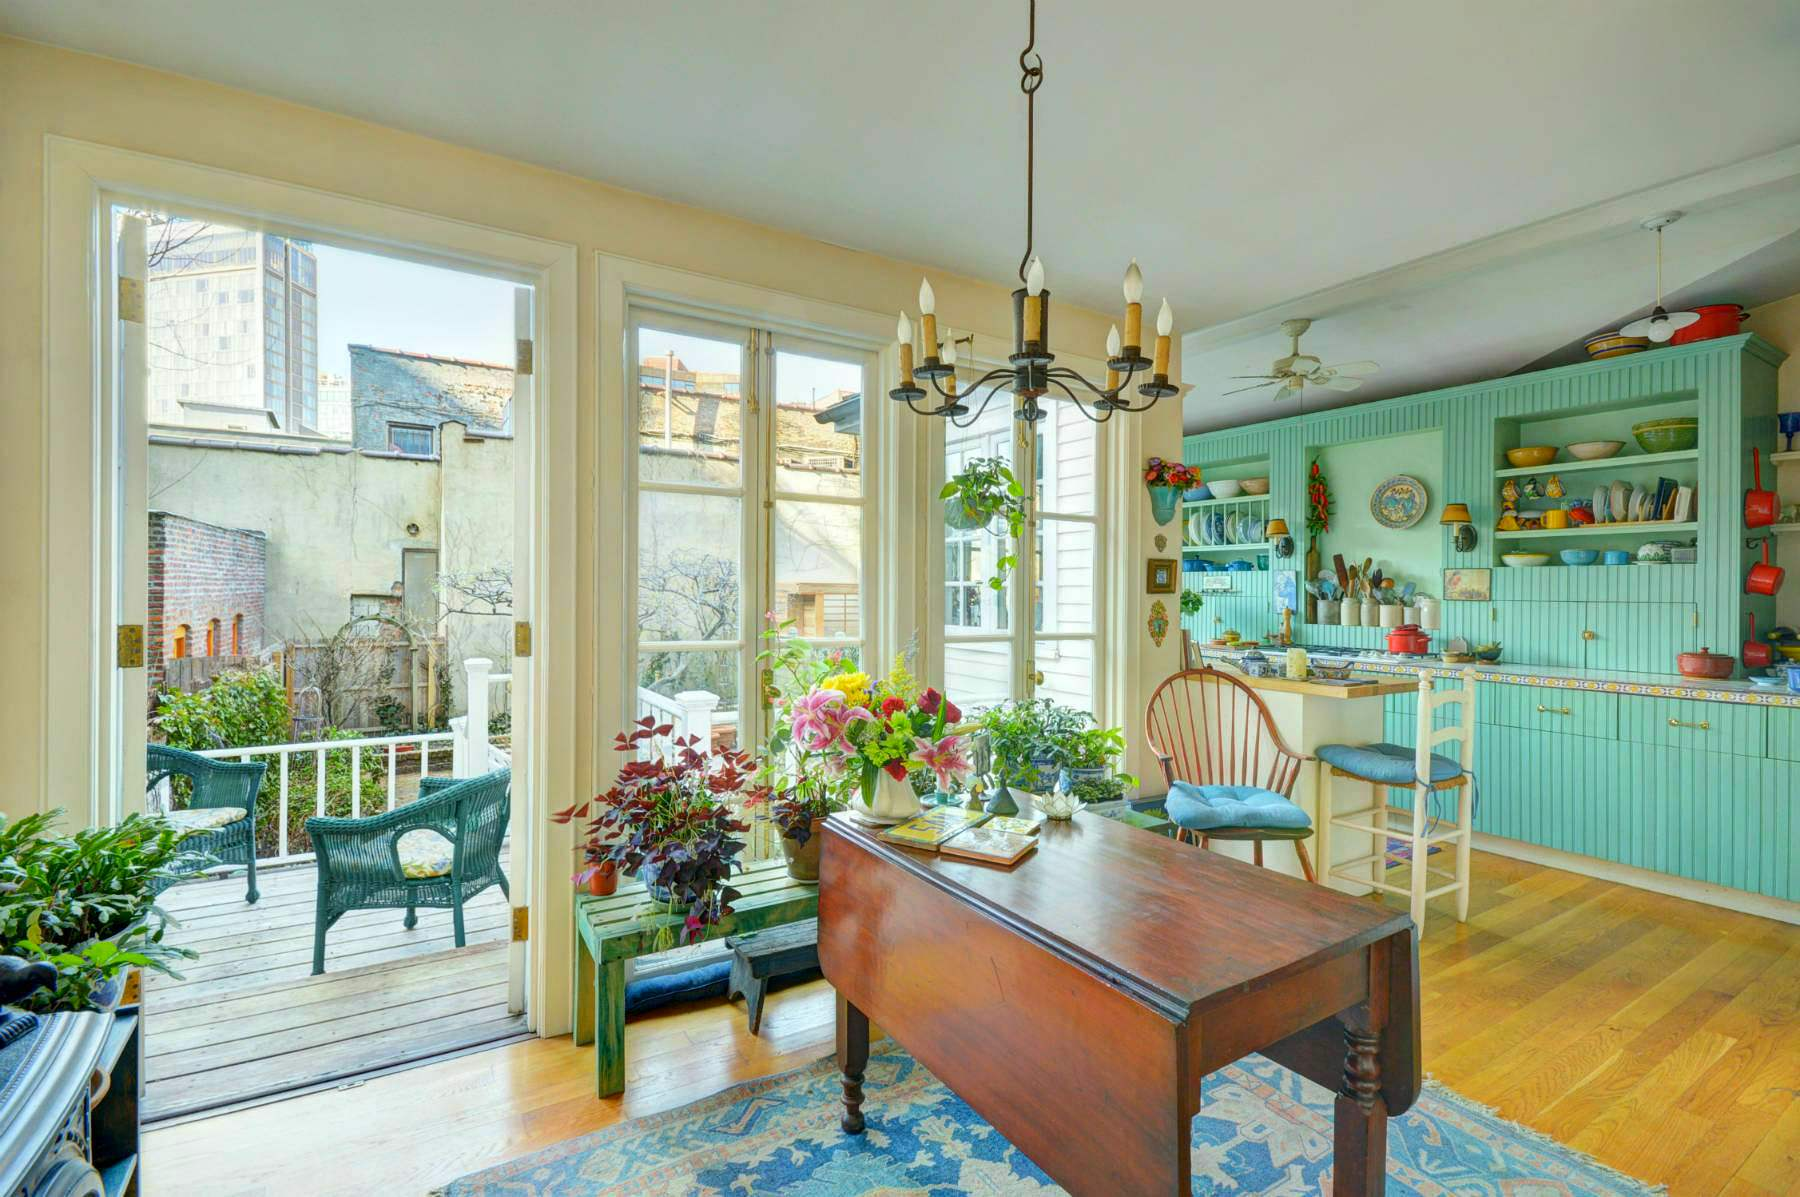 Listing of the Week: A West Village 'Jewel Box' of a Townhouse